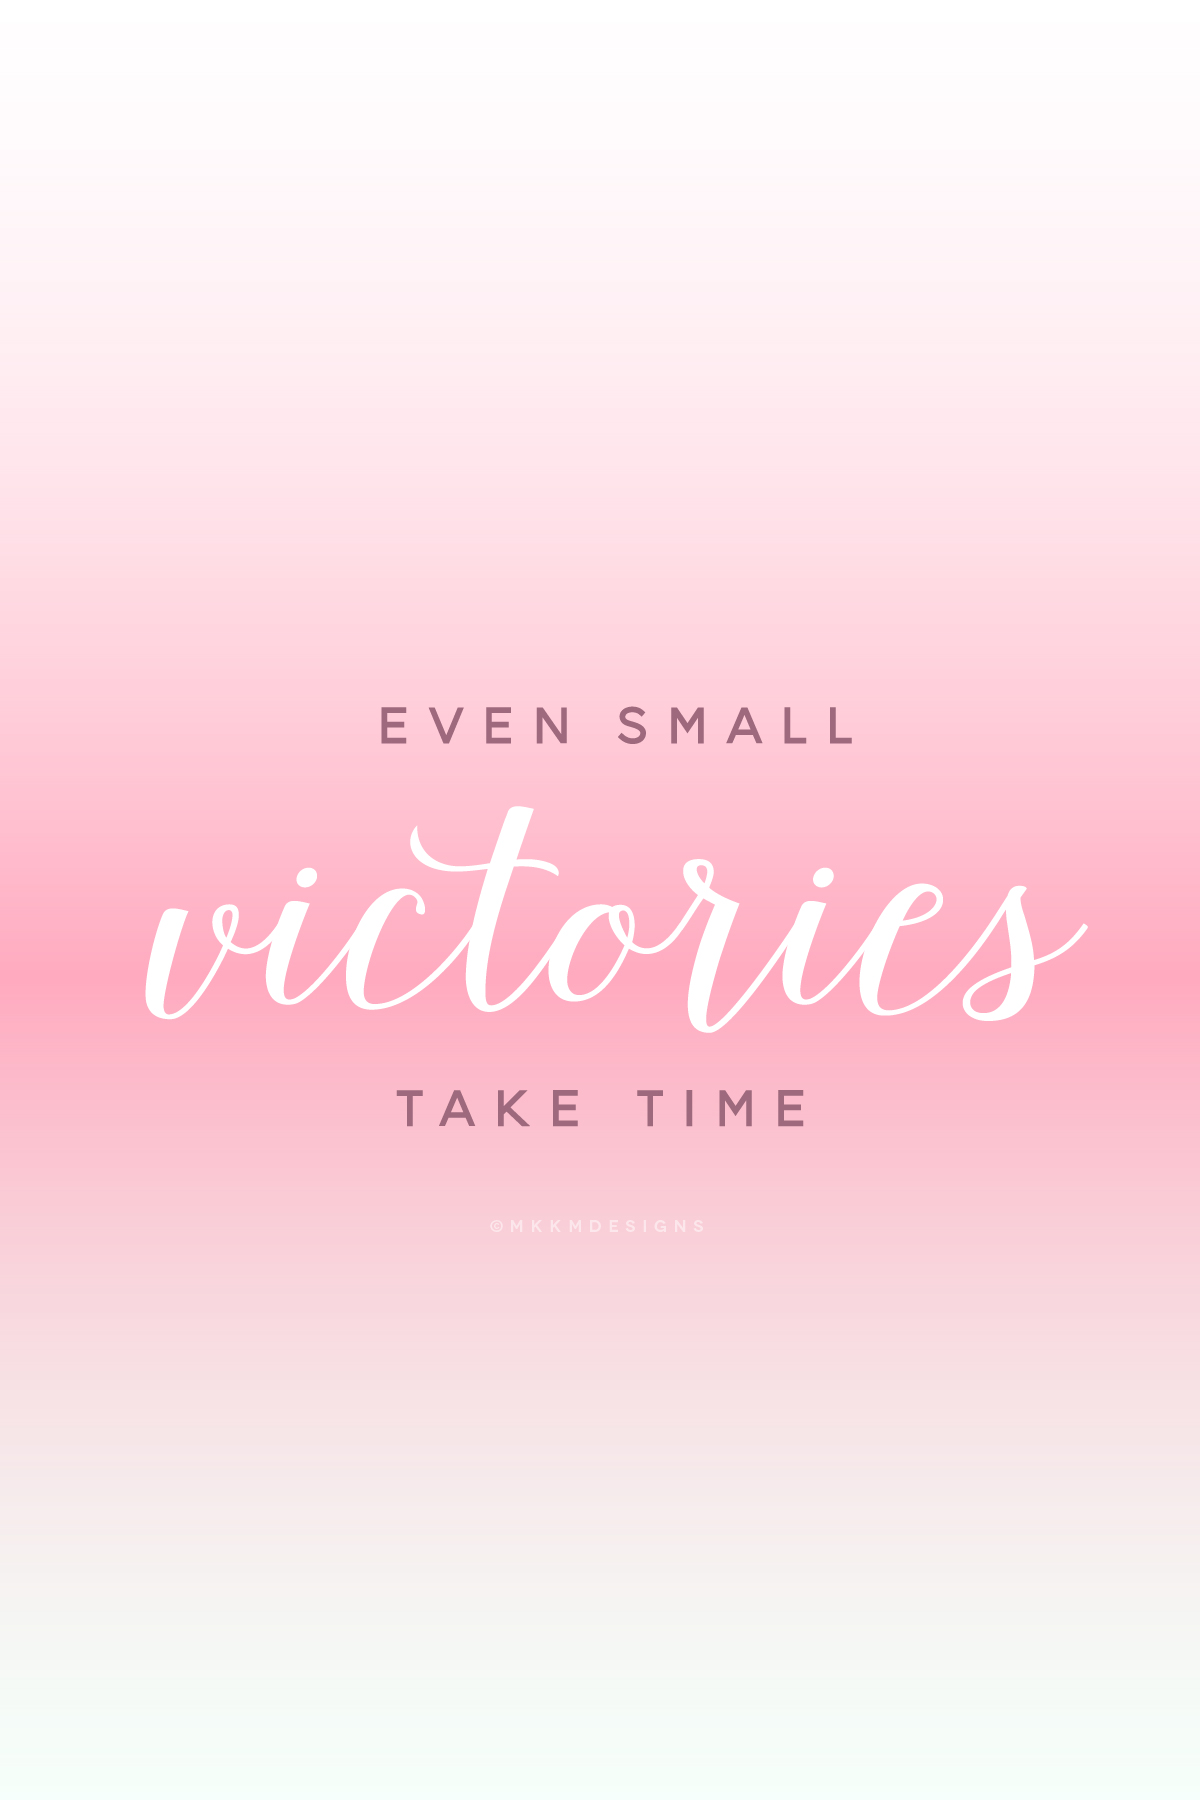 Even small victories take time - Monday Motivation for Boss Ladies and Mompreneurs // Quotes from MKKMDesigns